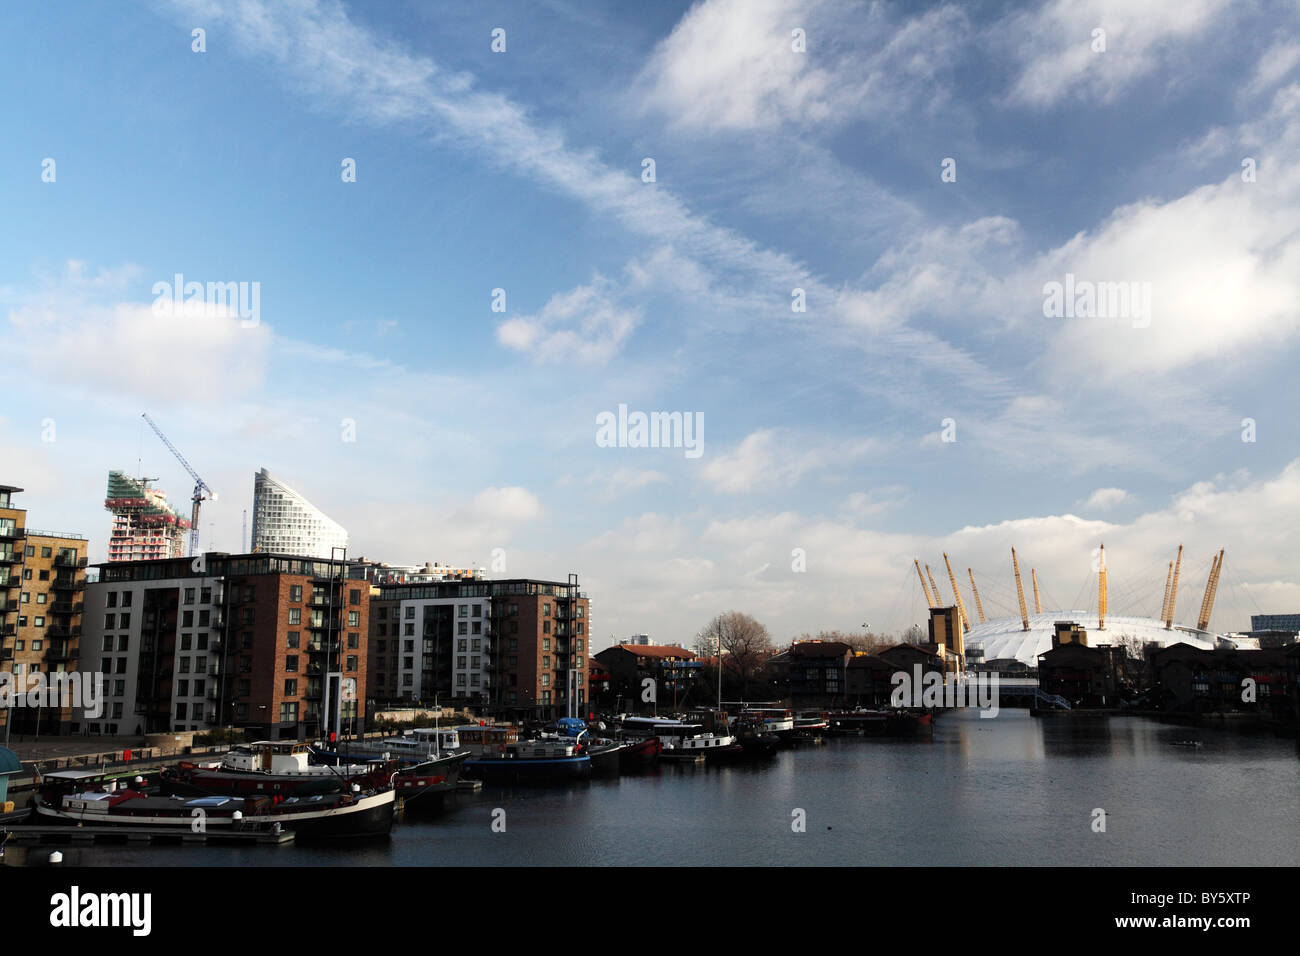 A view across the docklands, Canary Wharf. London - Stock Image